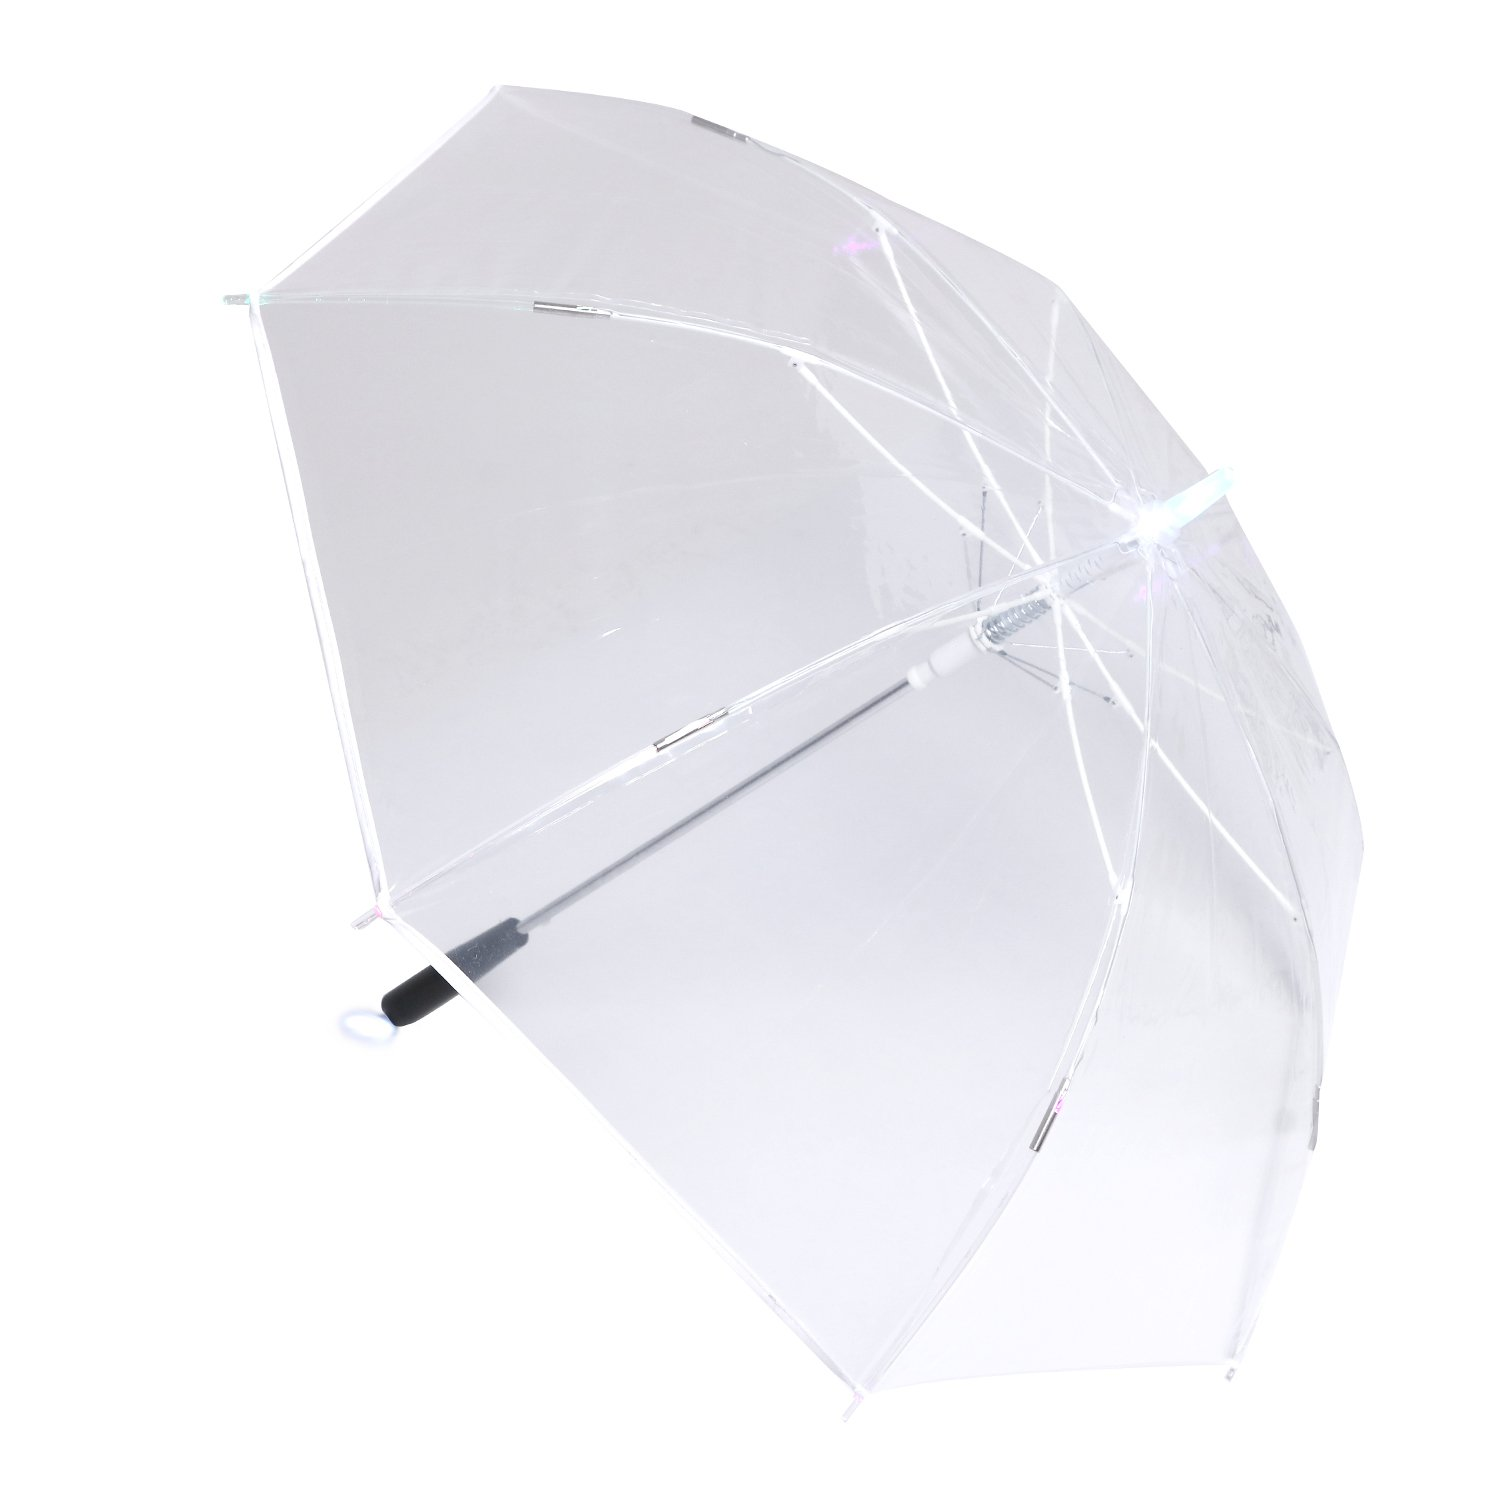 Creative Lightsaber Stick Umbrella 7 Colour changing LED Light Daily Accessory (clear) by Cexin (Image #1)